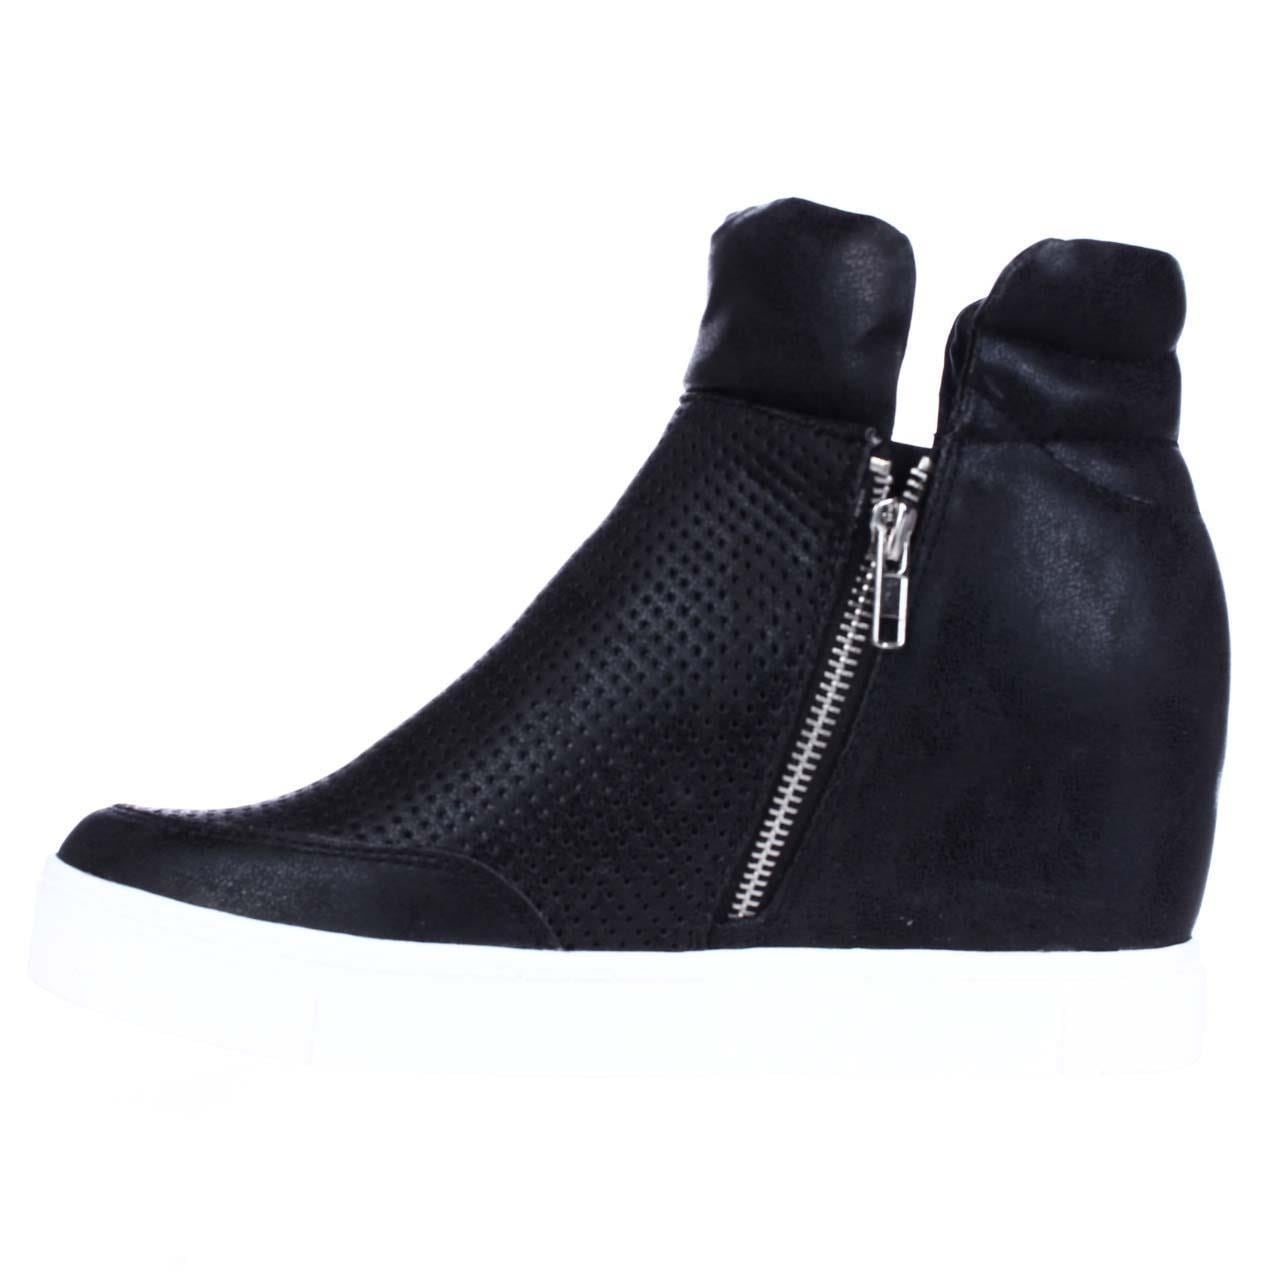 7c17536198d Shop Steve Madden Linqsp Perforated Wedge Fashion Sneakers